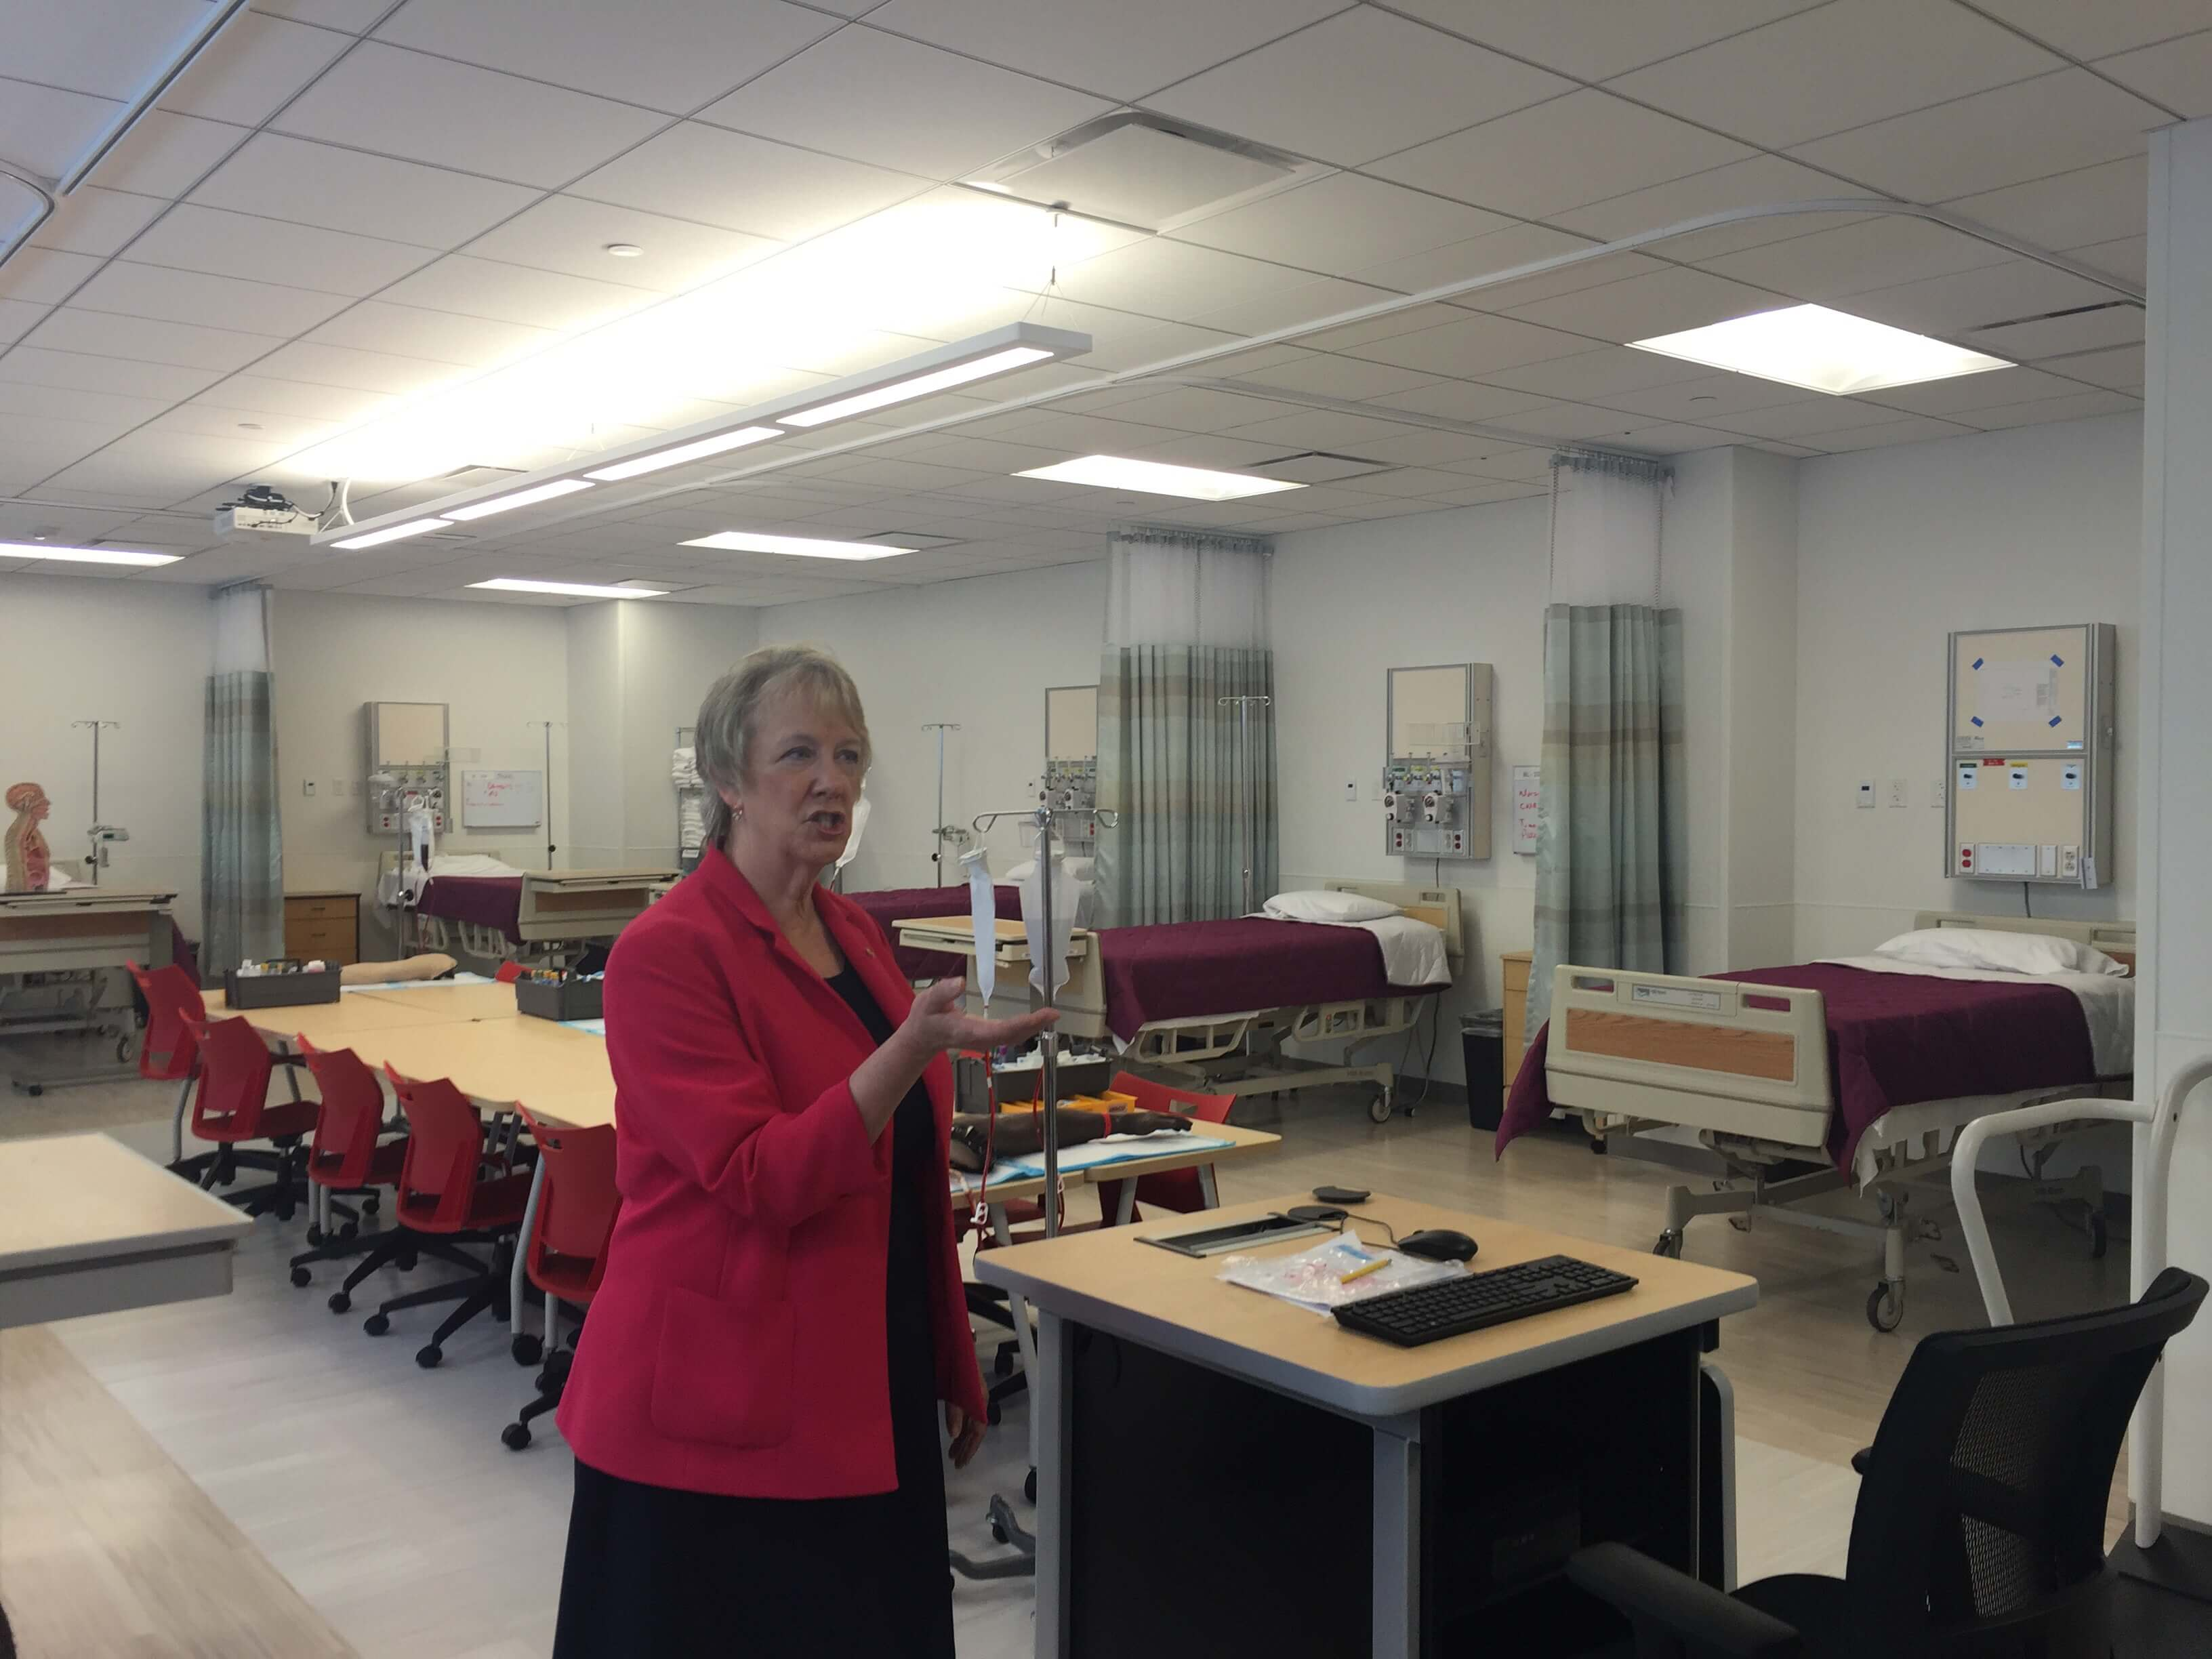 Dean Poldi Tschirch guides us through one of the simulation labs for the school of nursing.